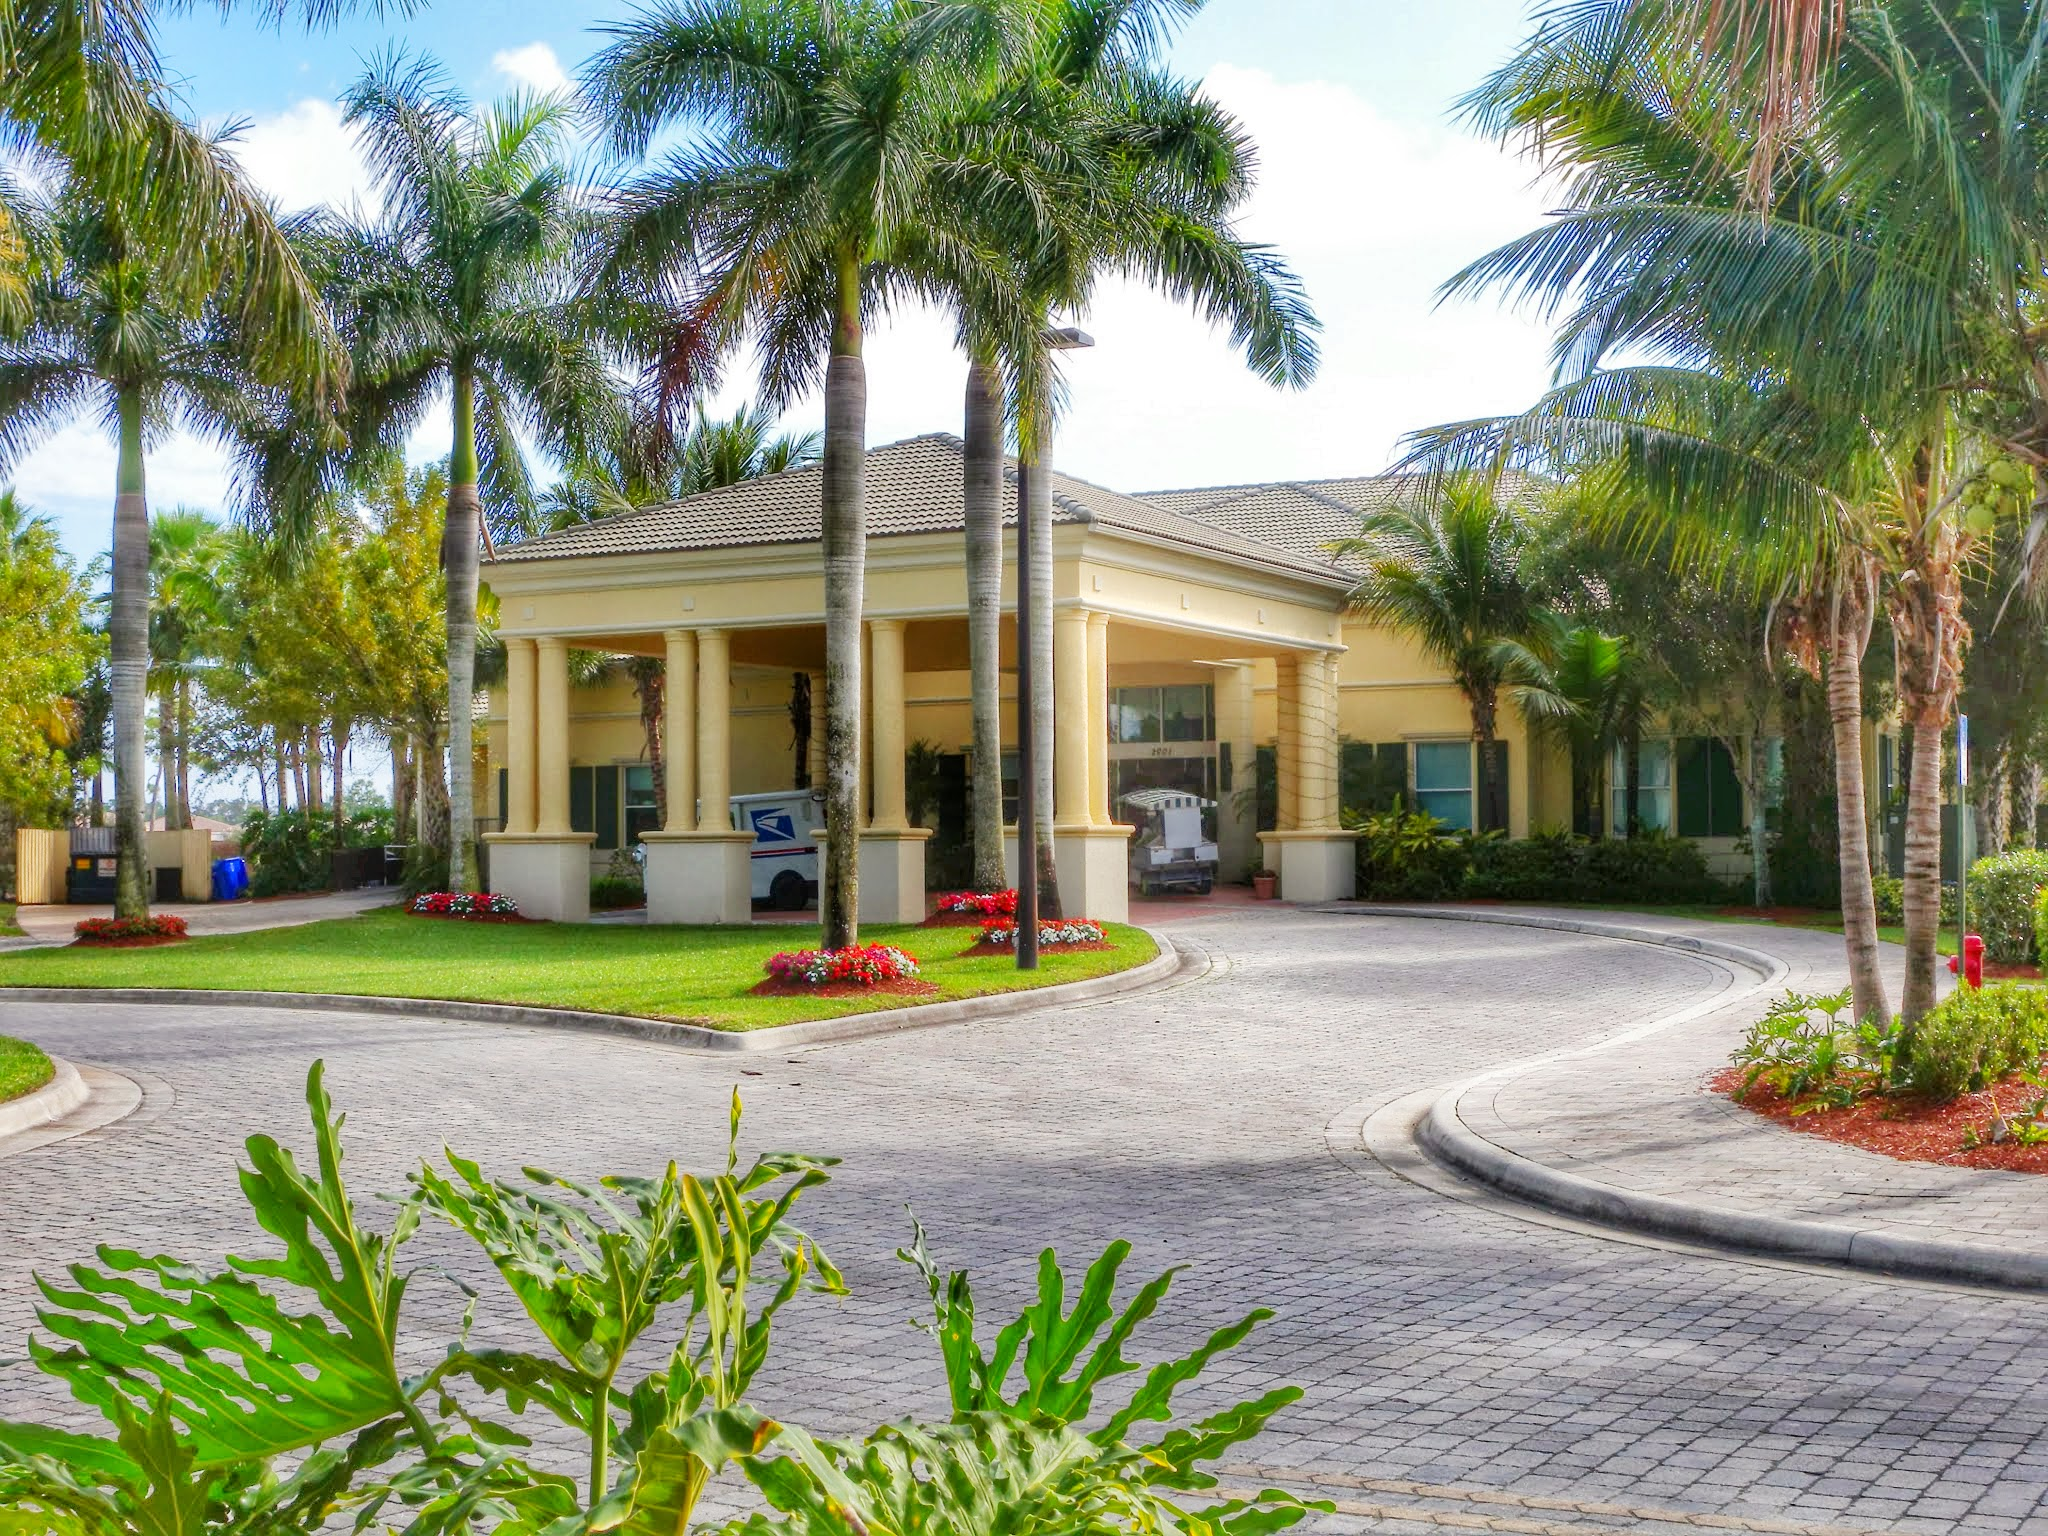 Royal Palm Beach FL Madison Green Homes For Sale - Florida IPI International Properties and Investments